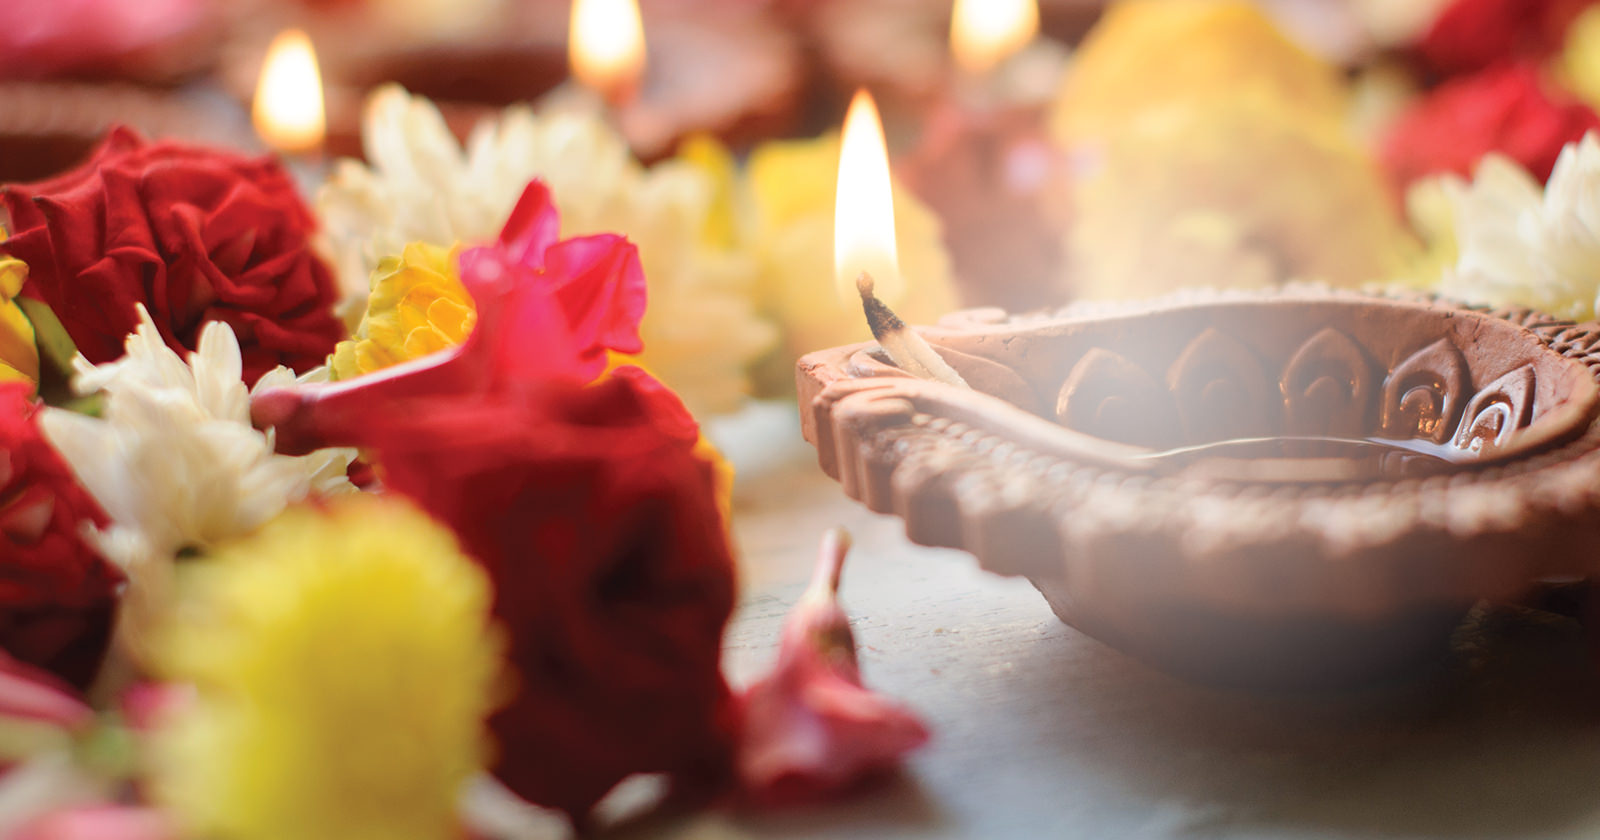 Diwali Celebrations In Mumbai – A Sight Not To Be Missed